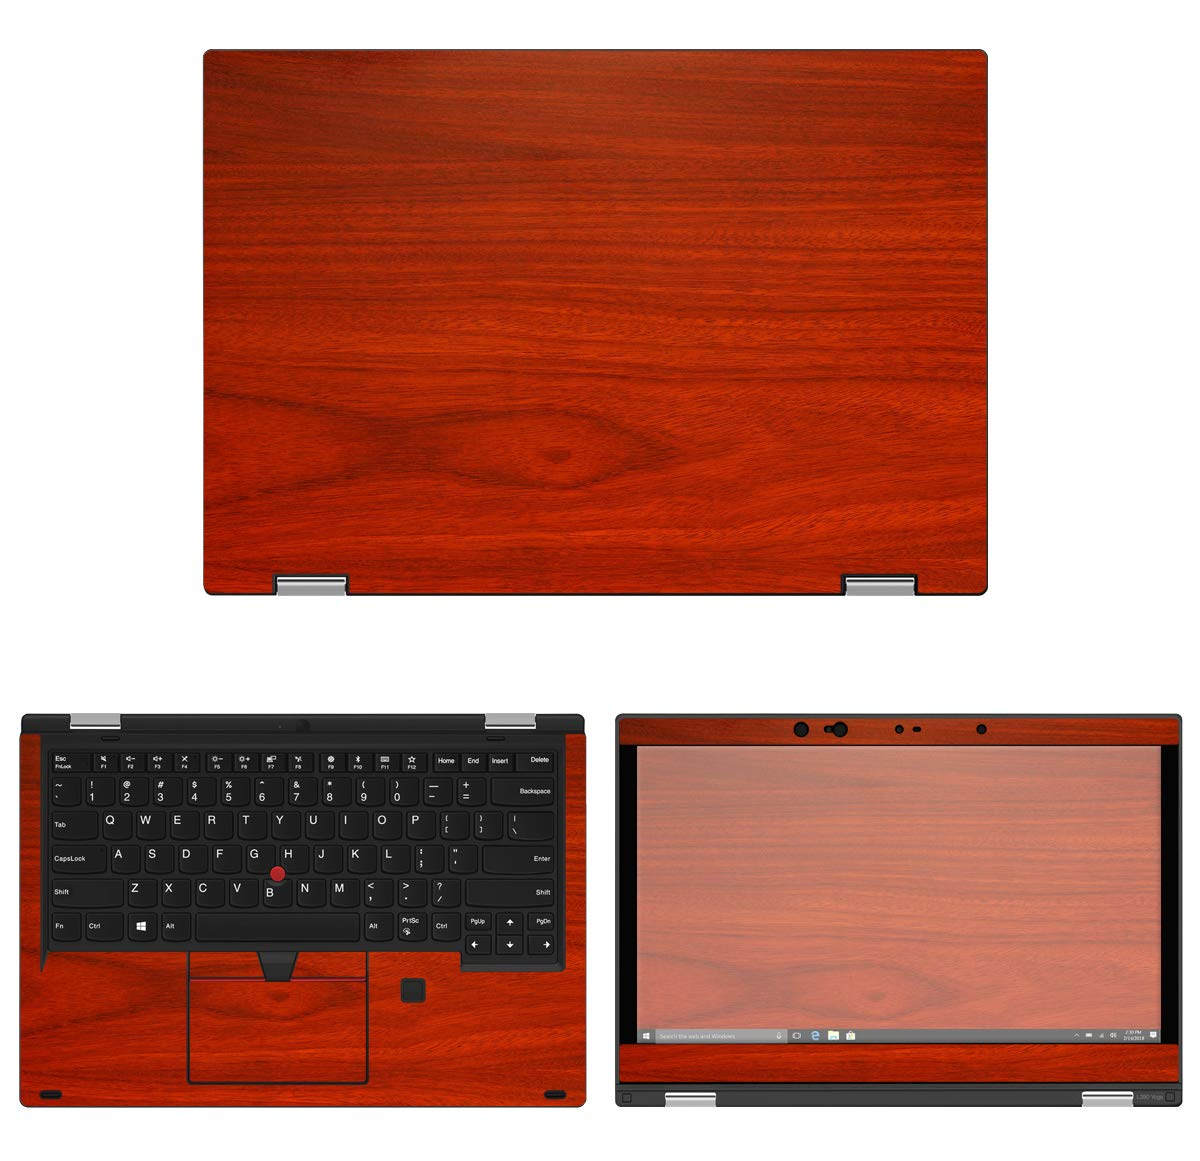 Amazon.com: Decalrus - Protective Decal Wood Skin Sticker ...